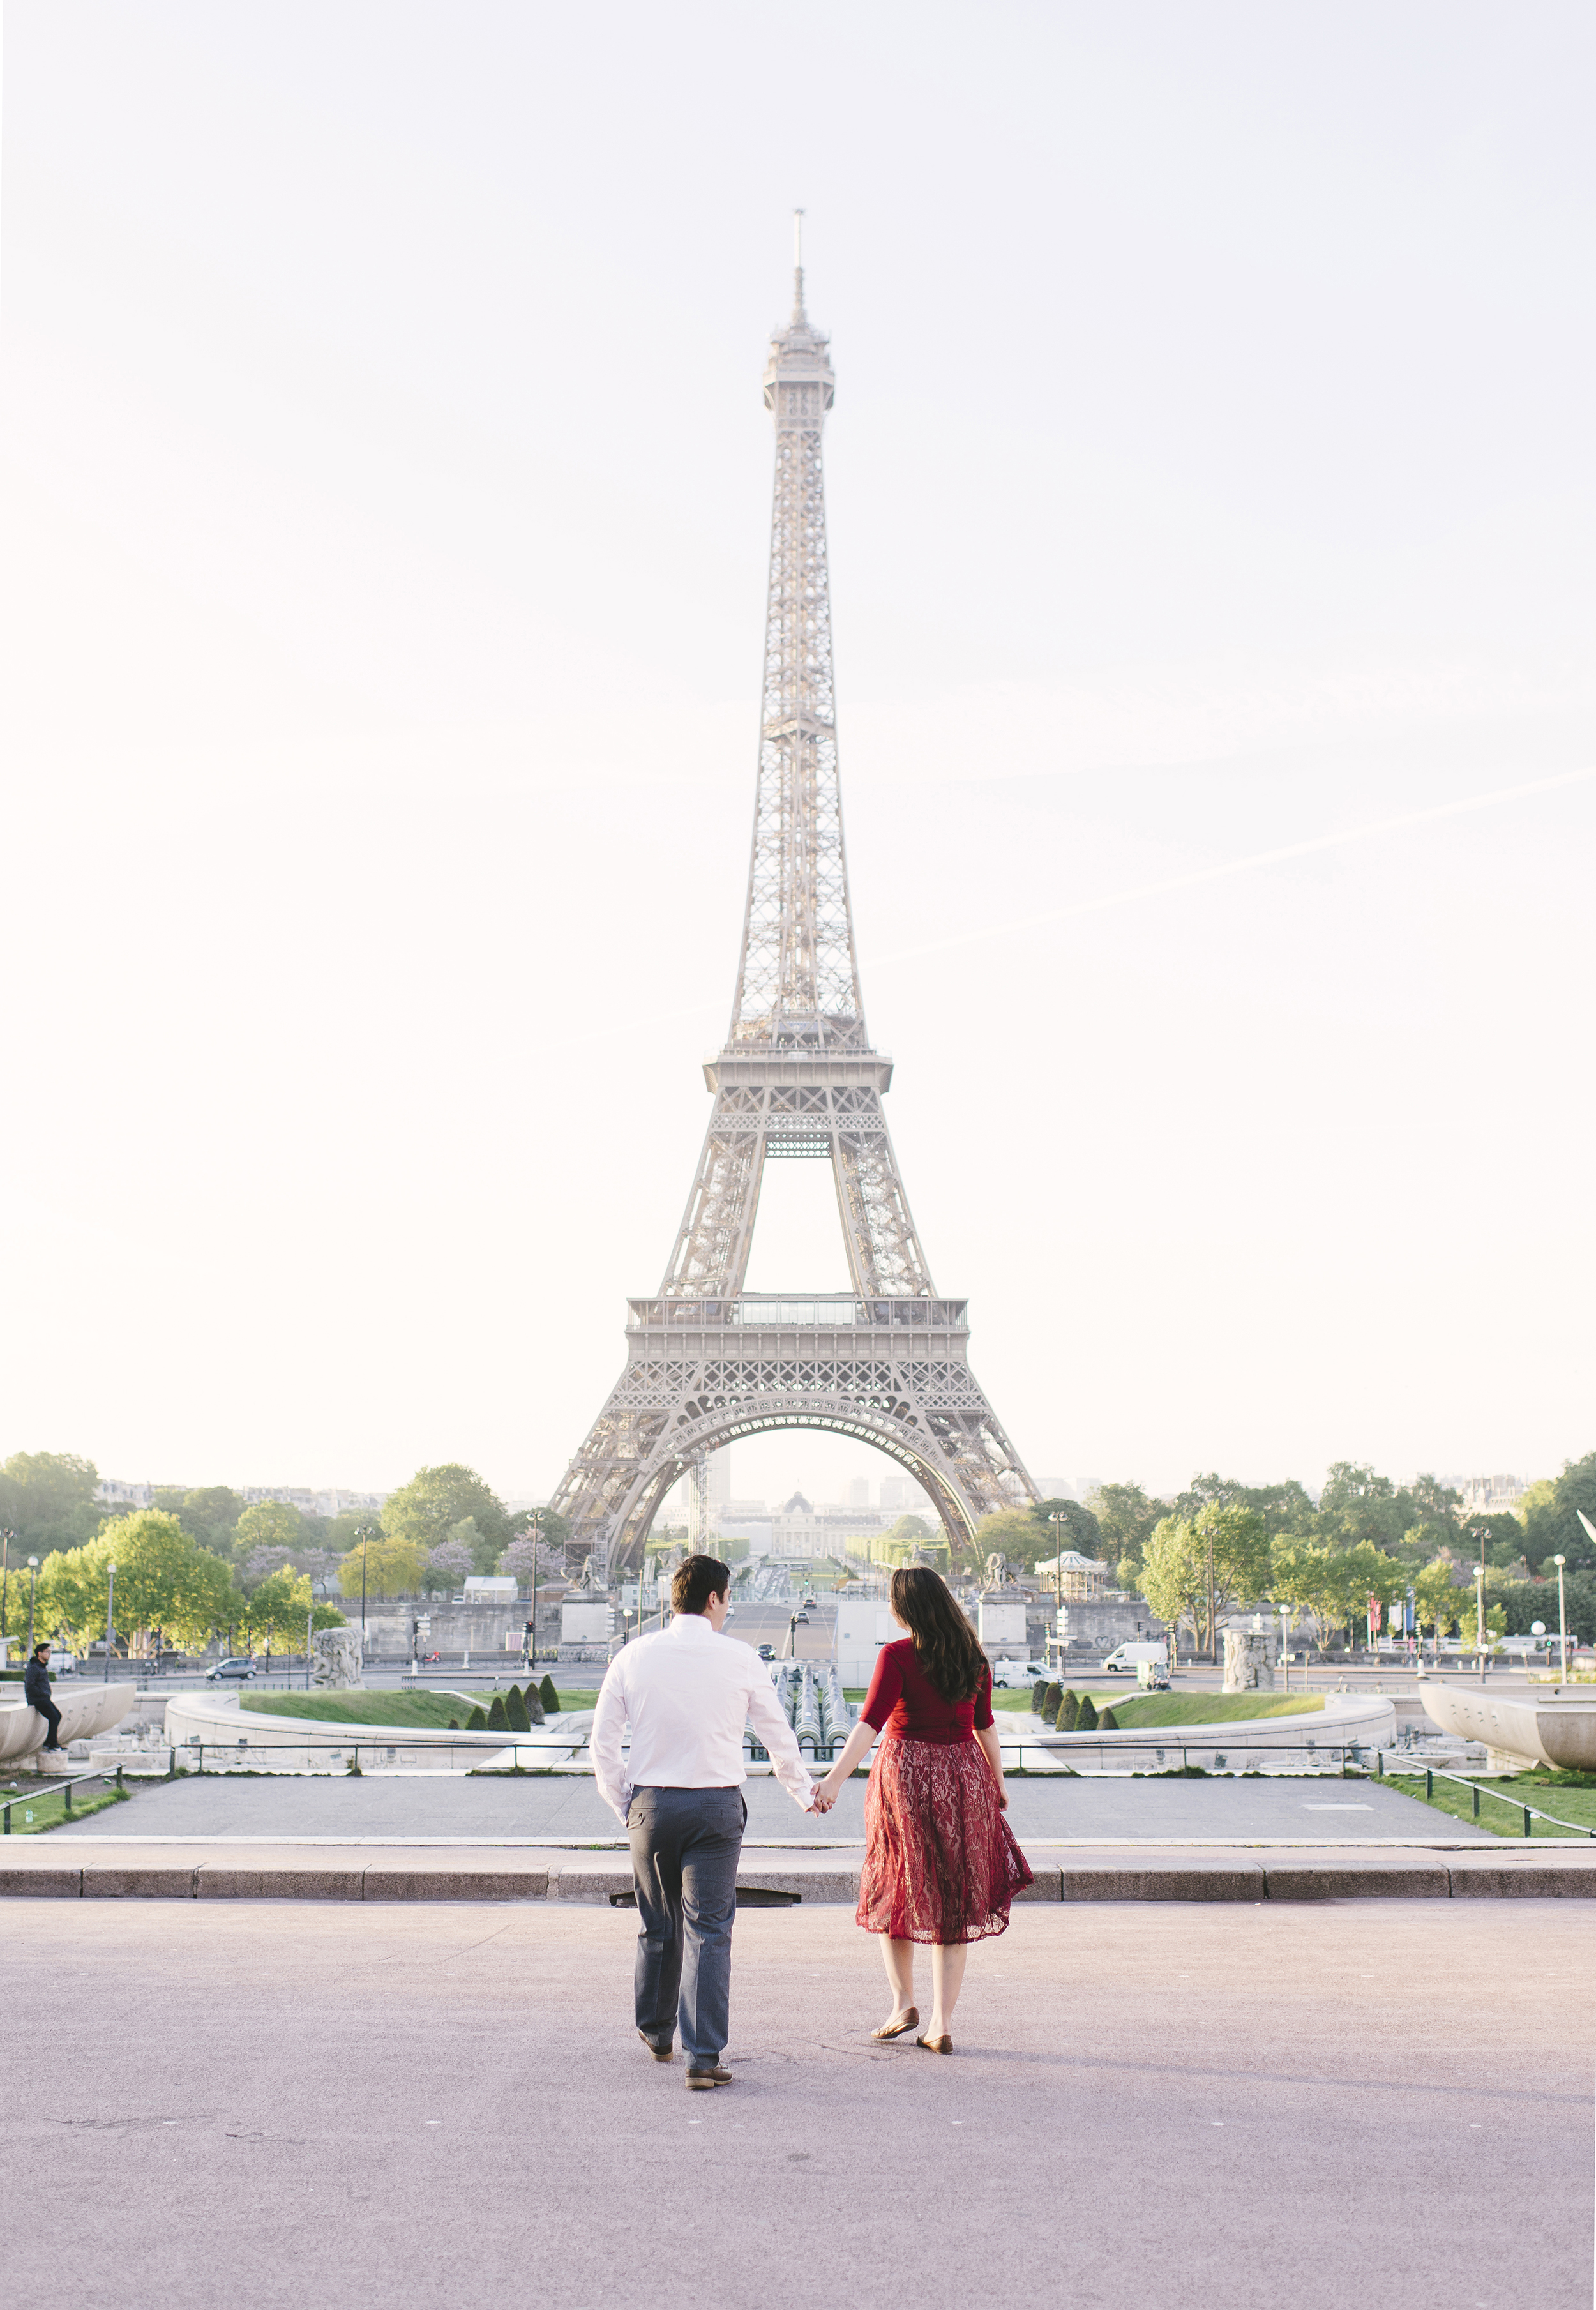 Couple-photoshoot-Anniversary-Paris-Eiffel-Tower-Trocadero047.jpg